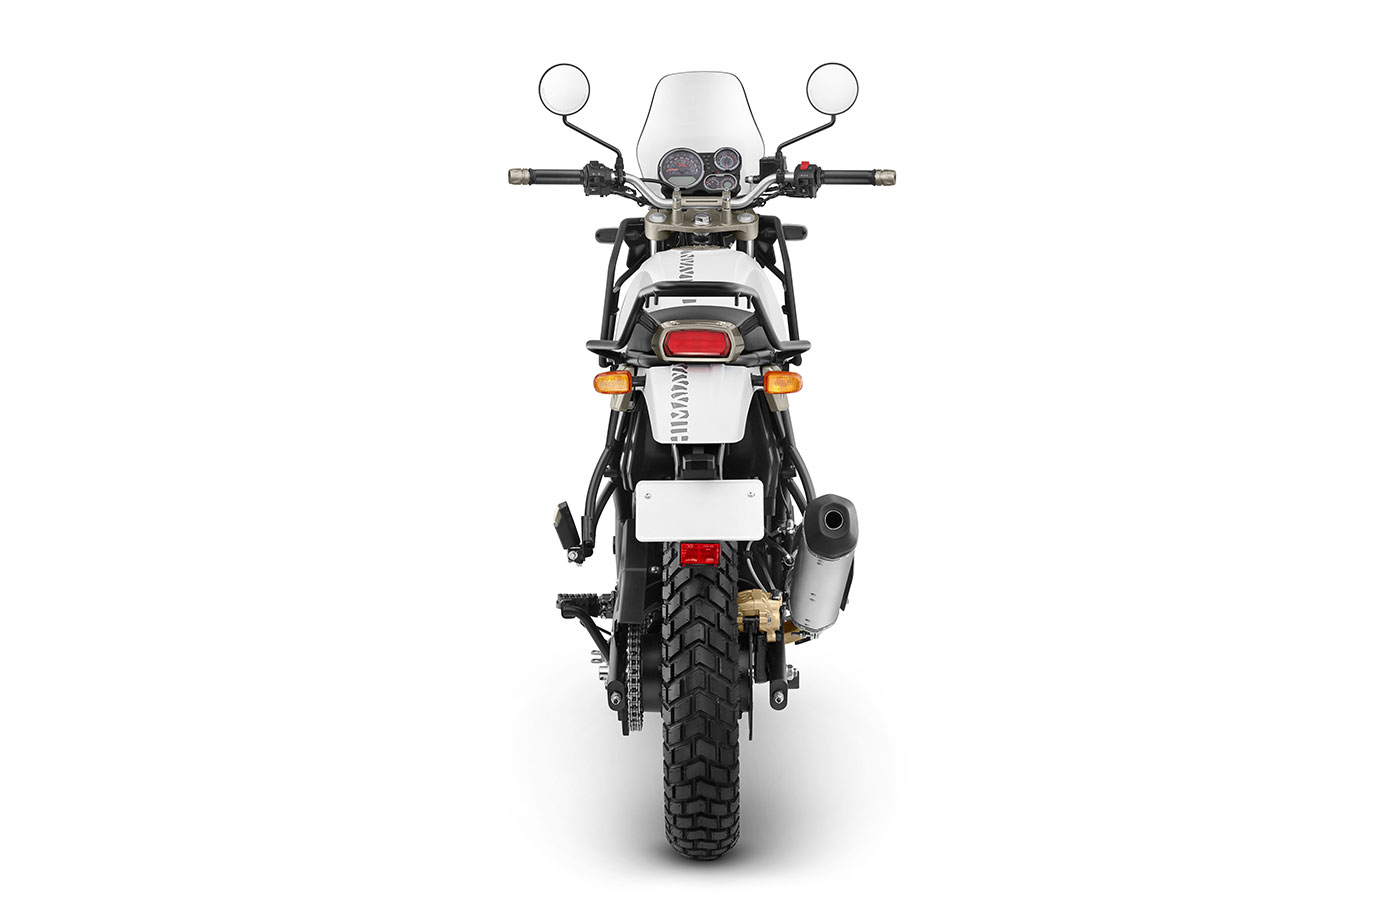 52bb6abd4953 Royal Enfield Himalayan coming to U.S. for 2018 - RevZilla